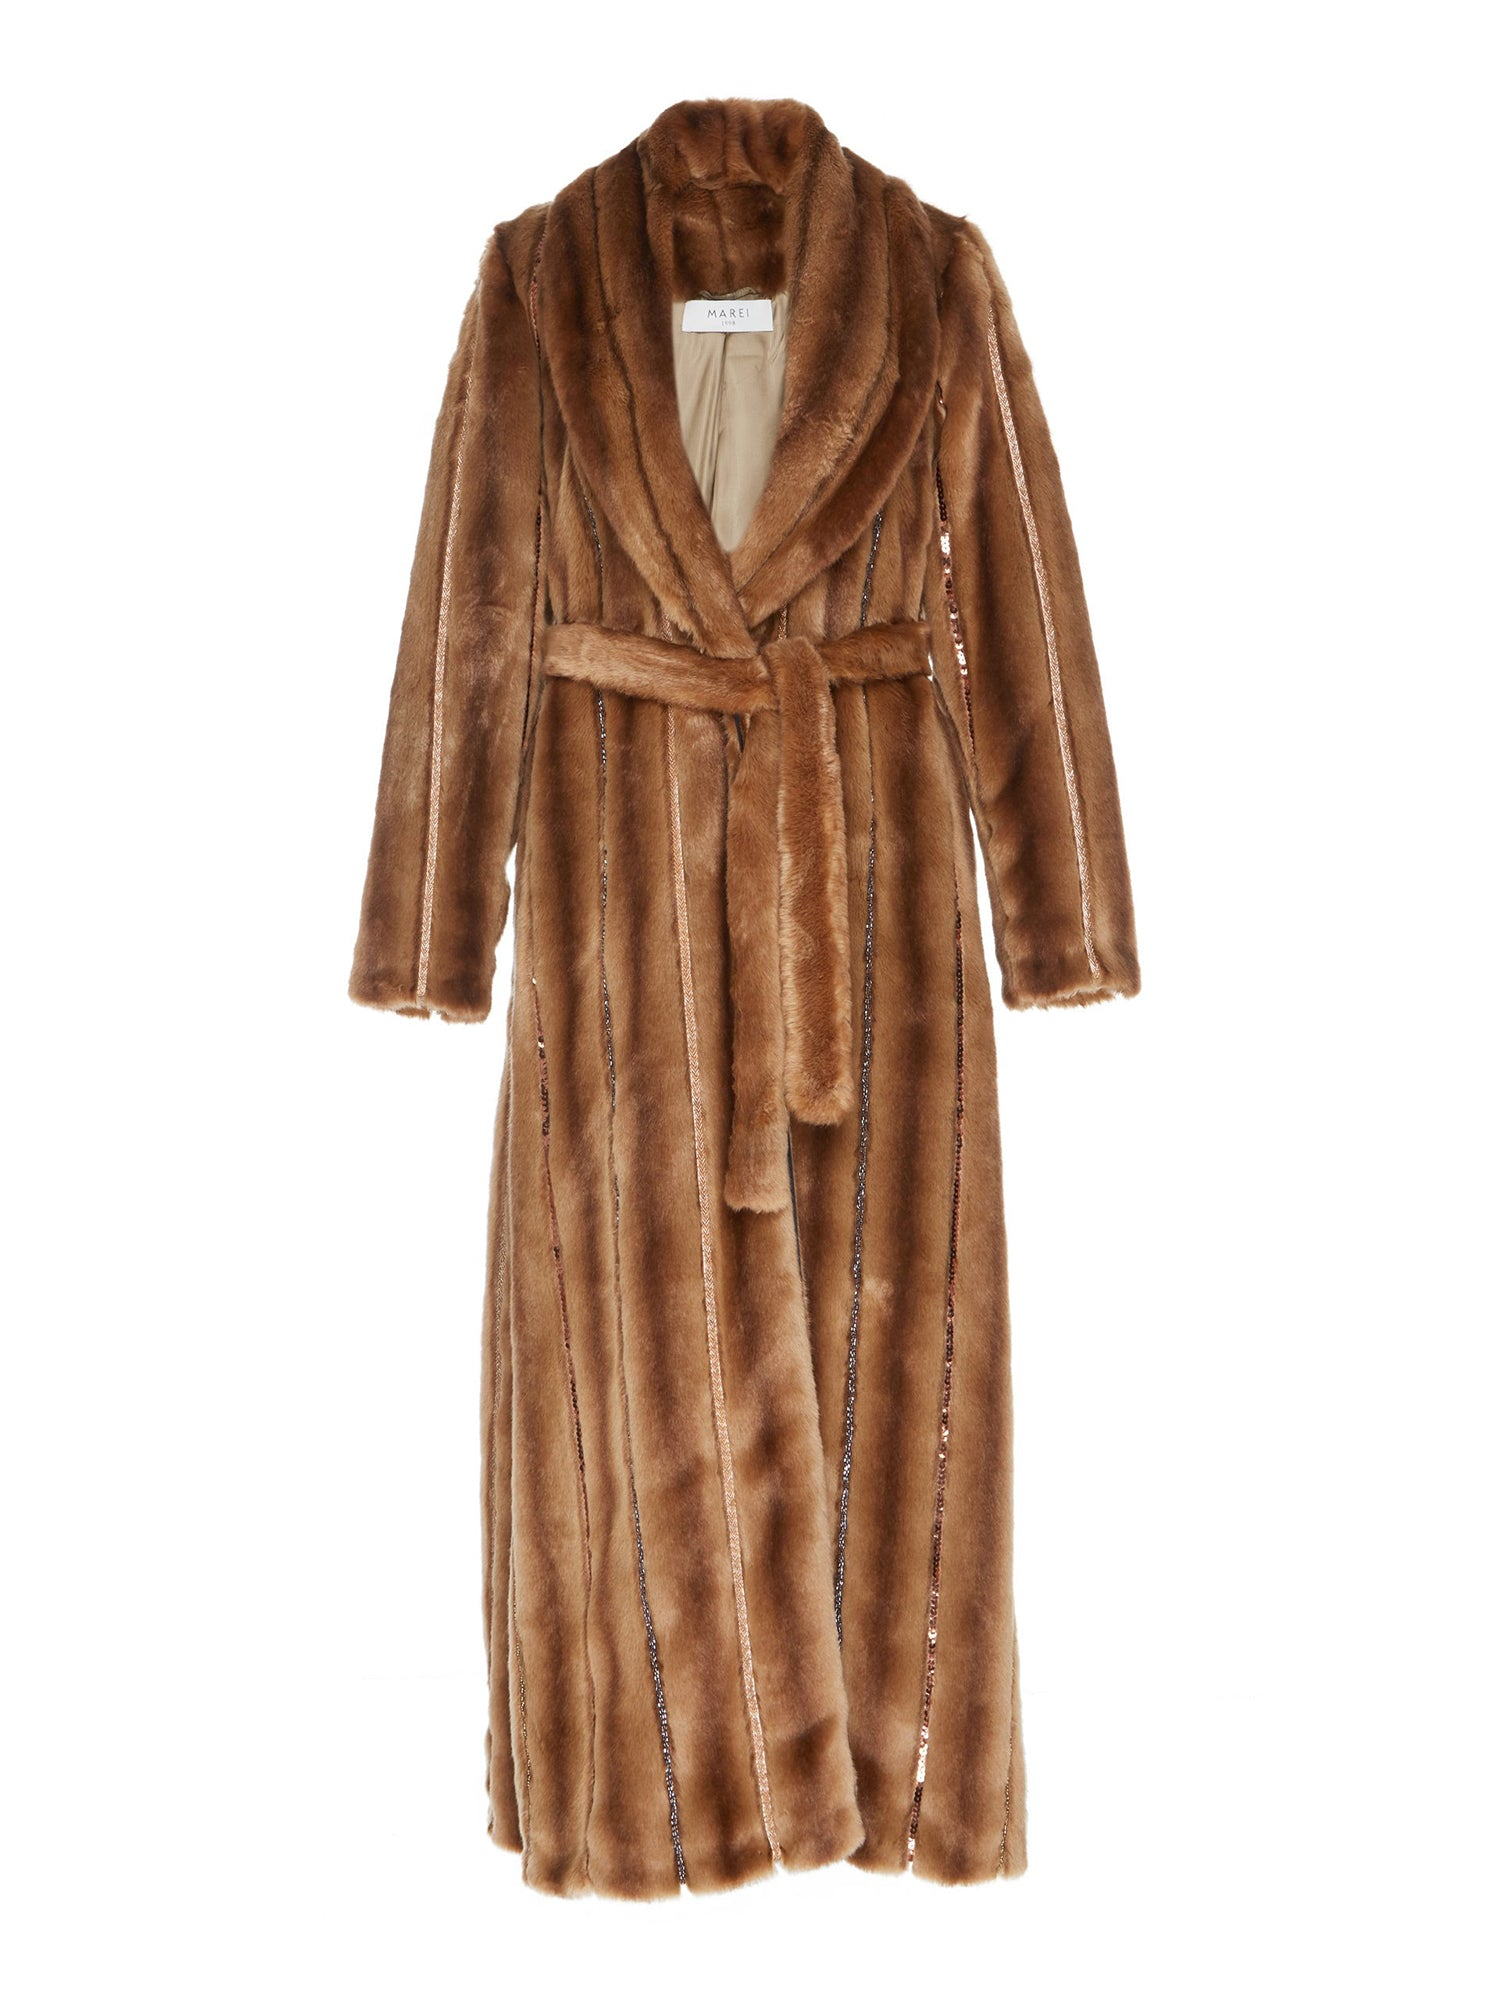 A Packshot Of Marei1998's Saponaria Faux Fur Coat In Classic Brown Hue. Made From Soft Faux Fur, Embellished With Bead Trims, It Features A Wrap Silhouette And A Notched Lapel Neckline. A Winter Essential.